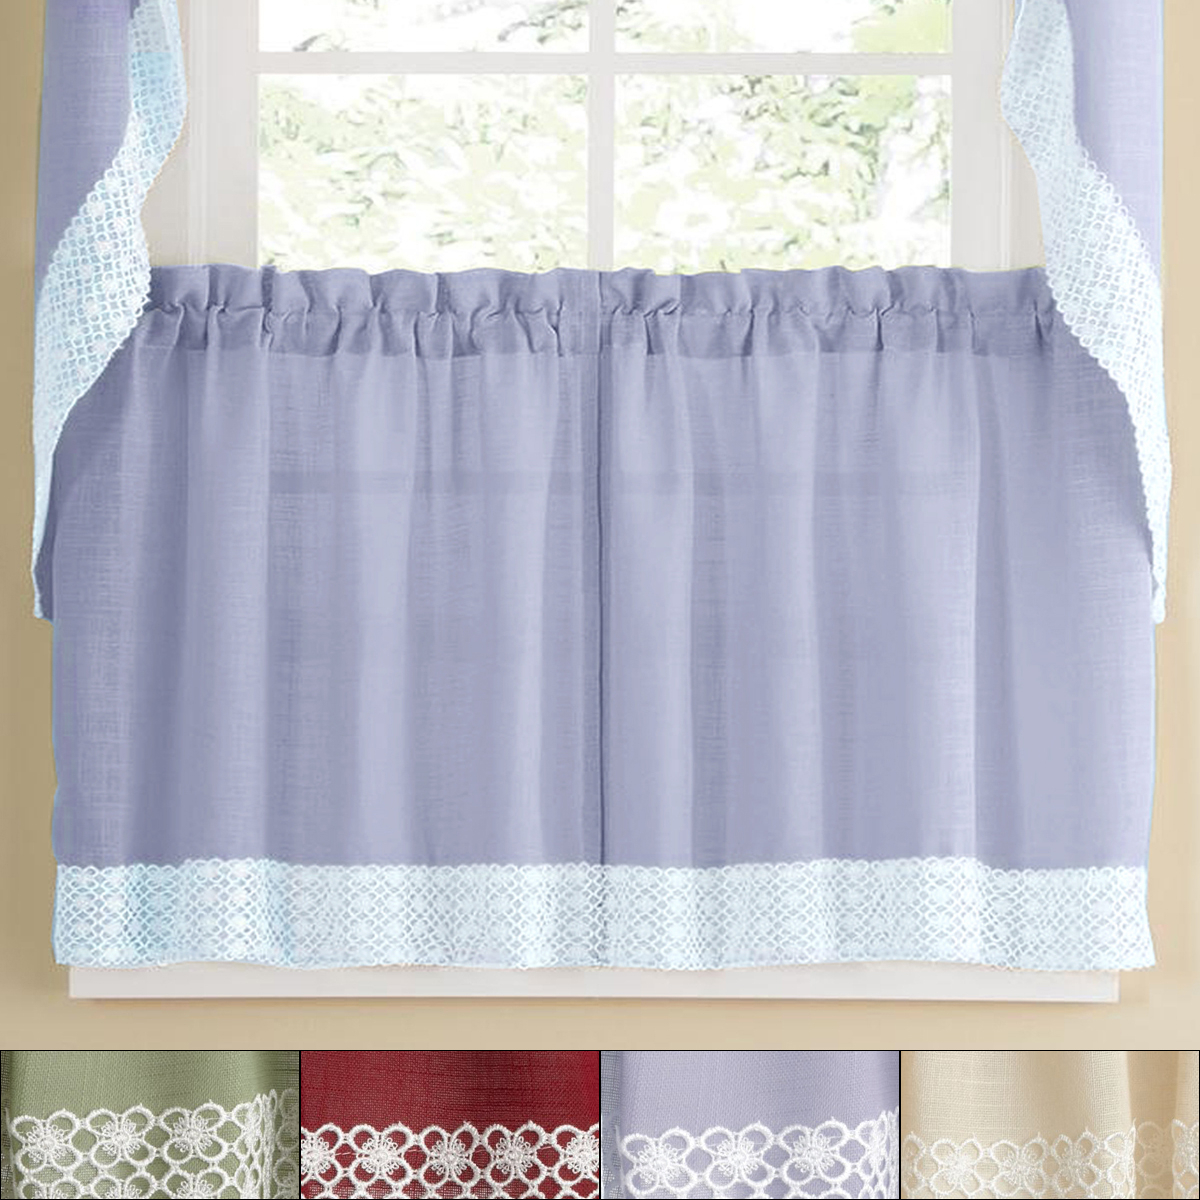 Details About Salem Kitchen Window Curtain W/ Lace Trim – 24 X 60 Tier Pair Pertaining To French Vanilla Country Style Curtain Parts With White Daisy Lace Accent (View 8 of 20)